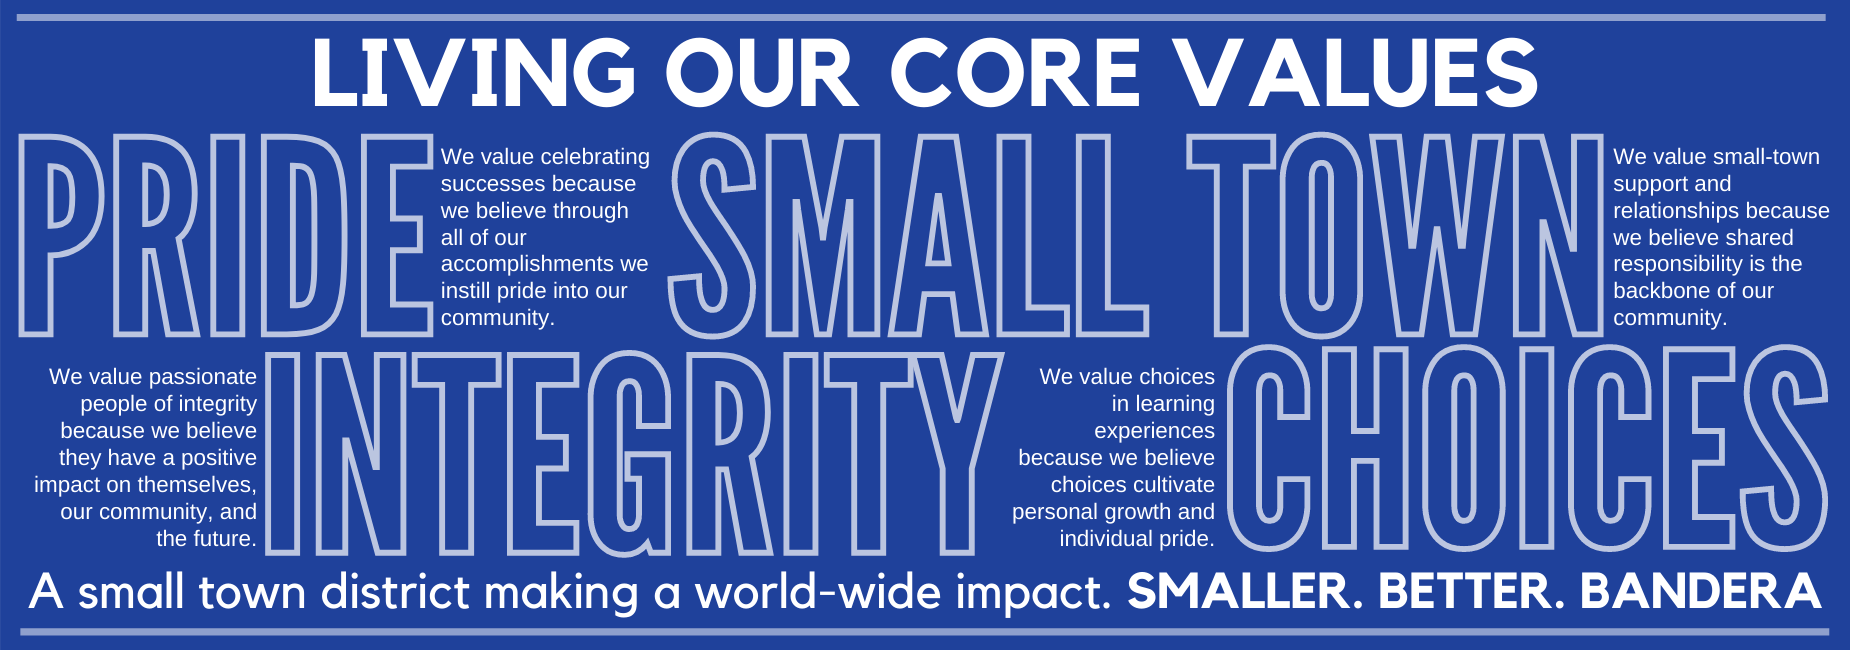 Living our core values